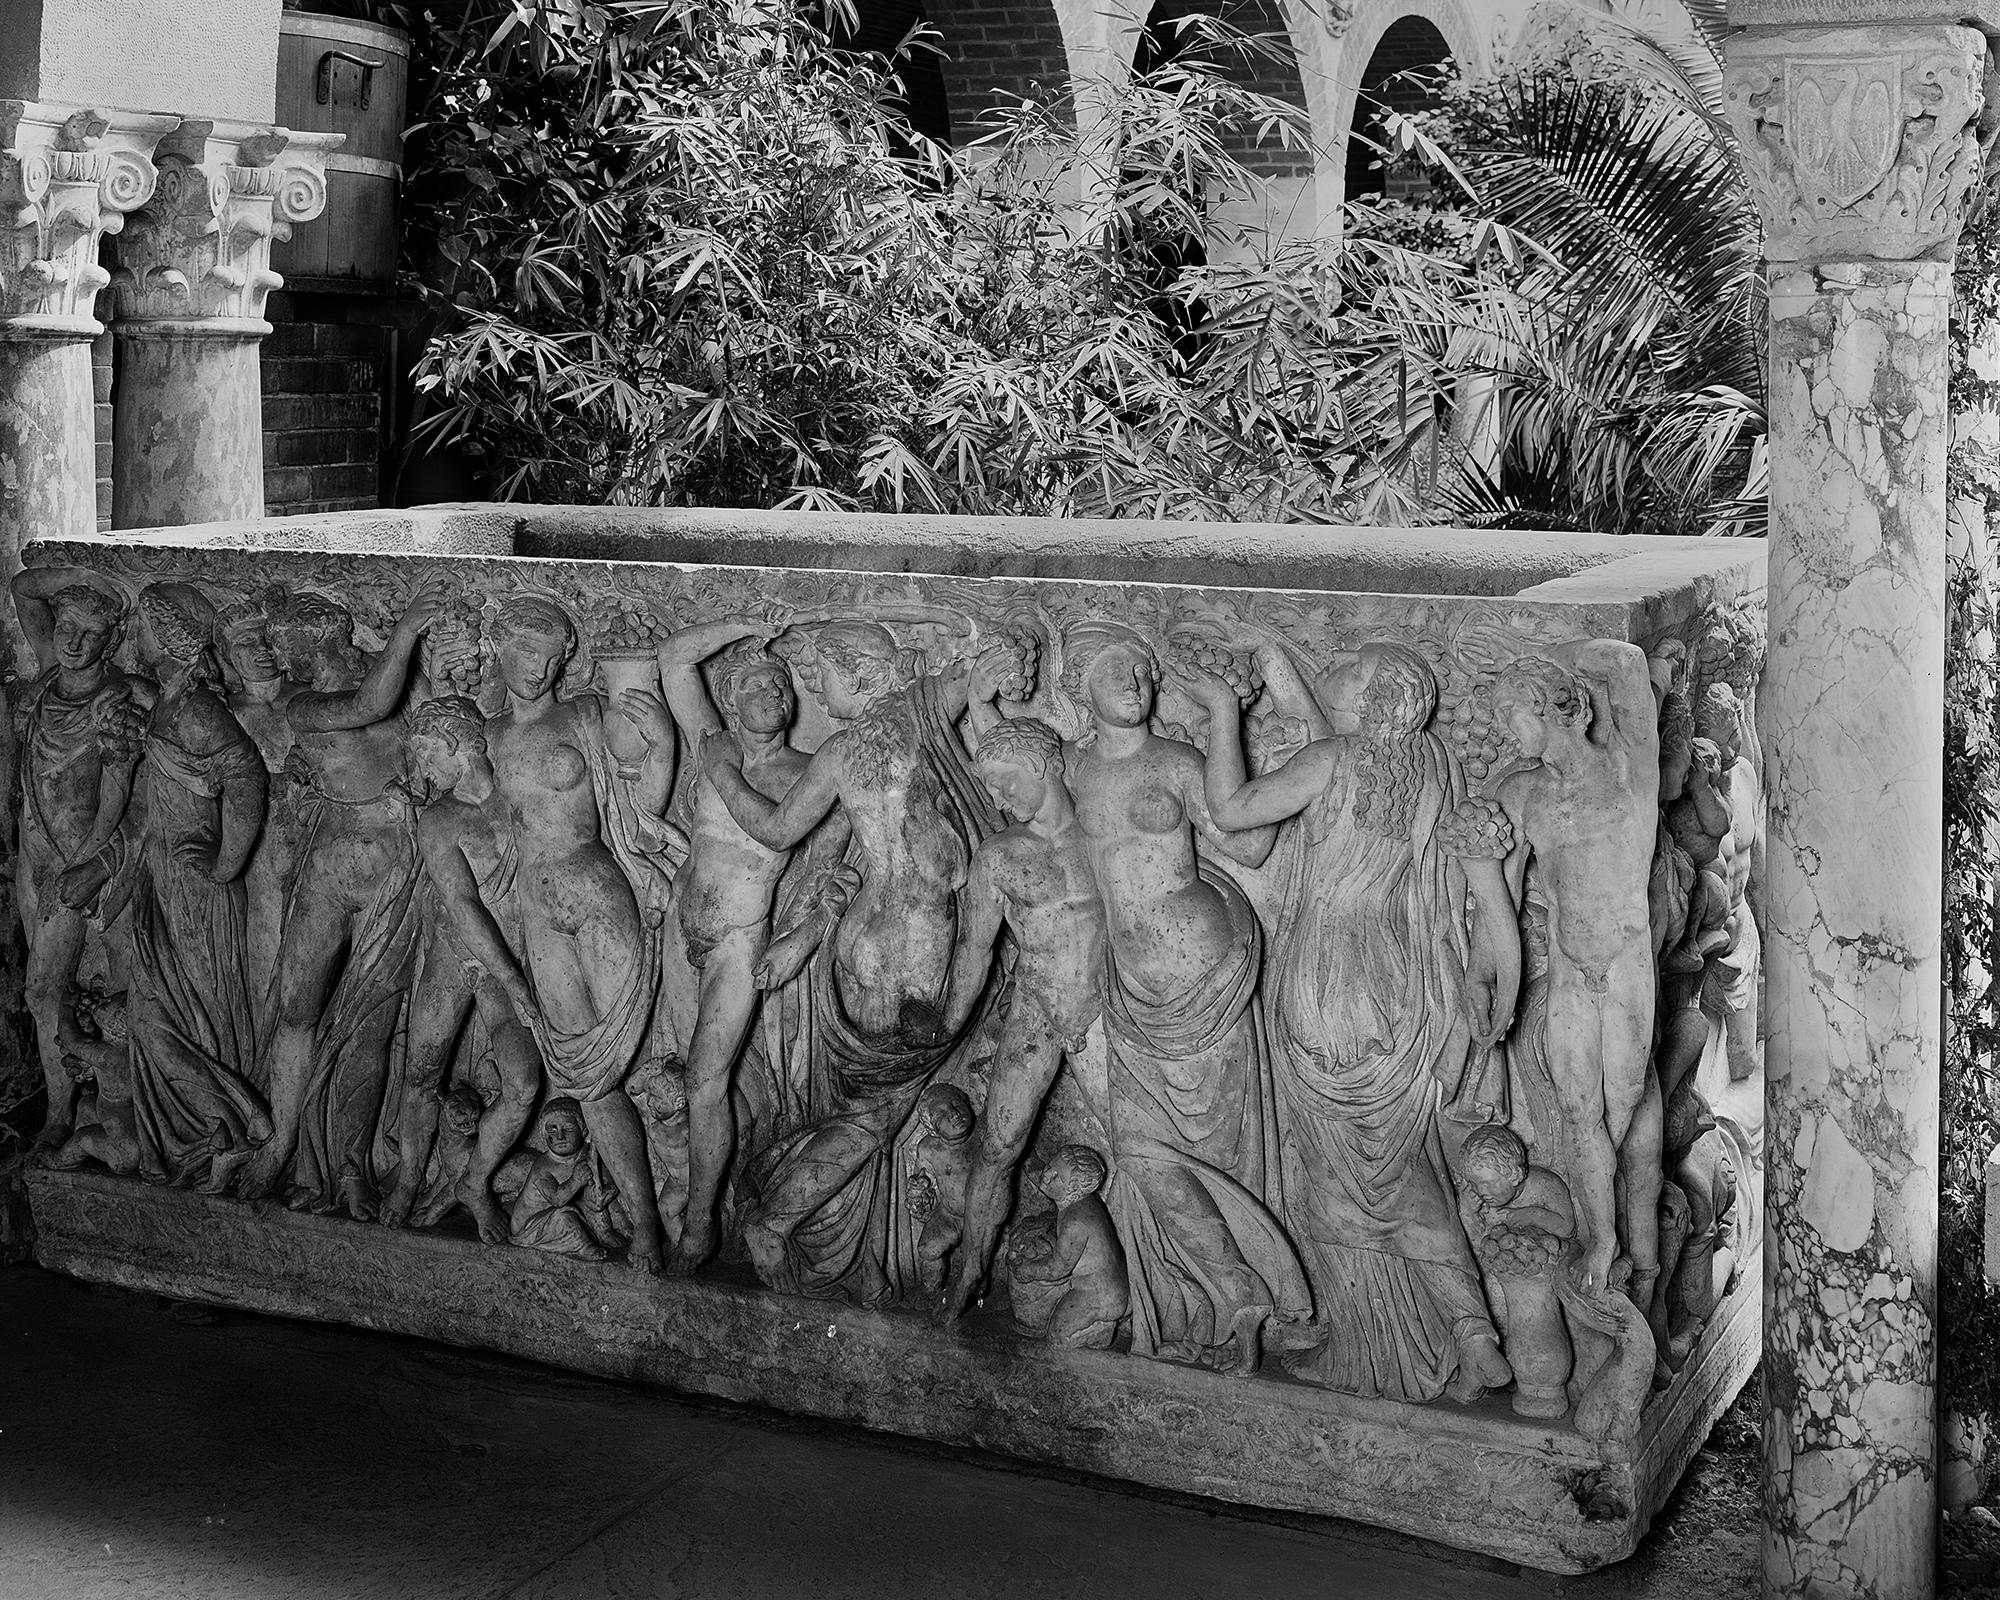 Black and white photo of the sarcophagus